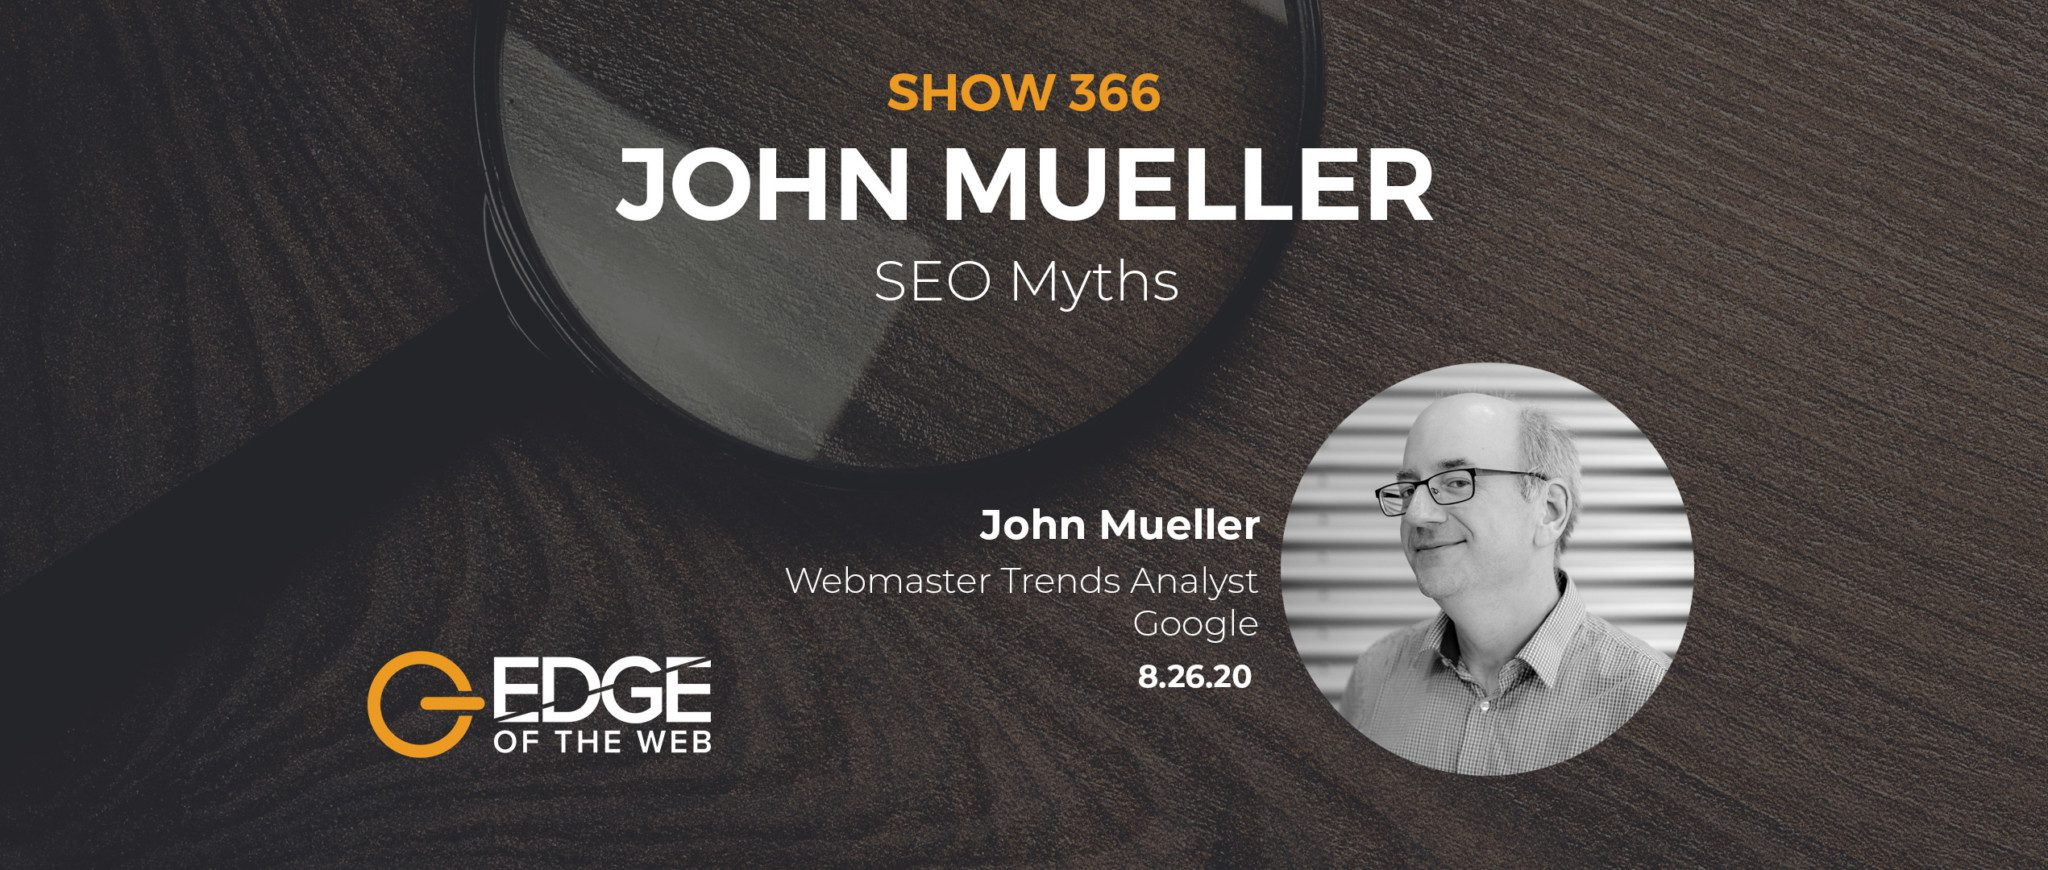 John Mueller EDGE Featured Image